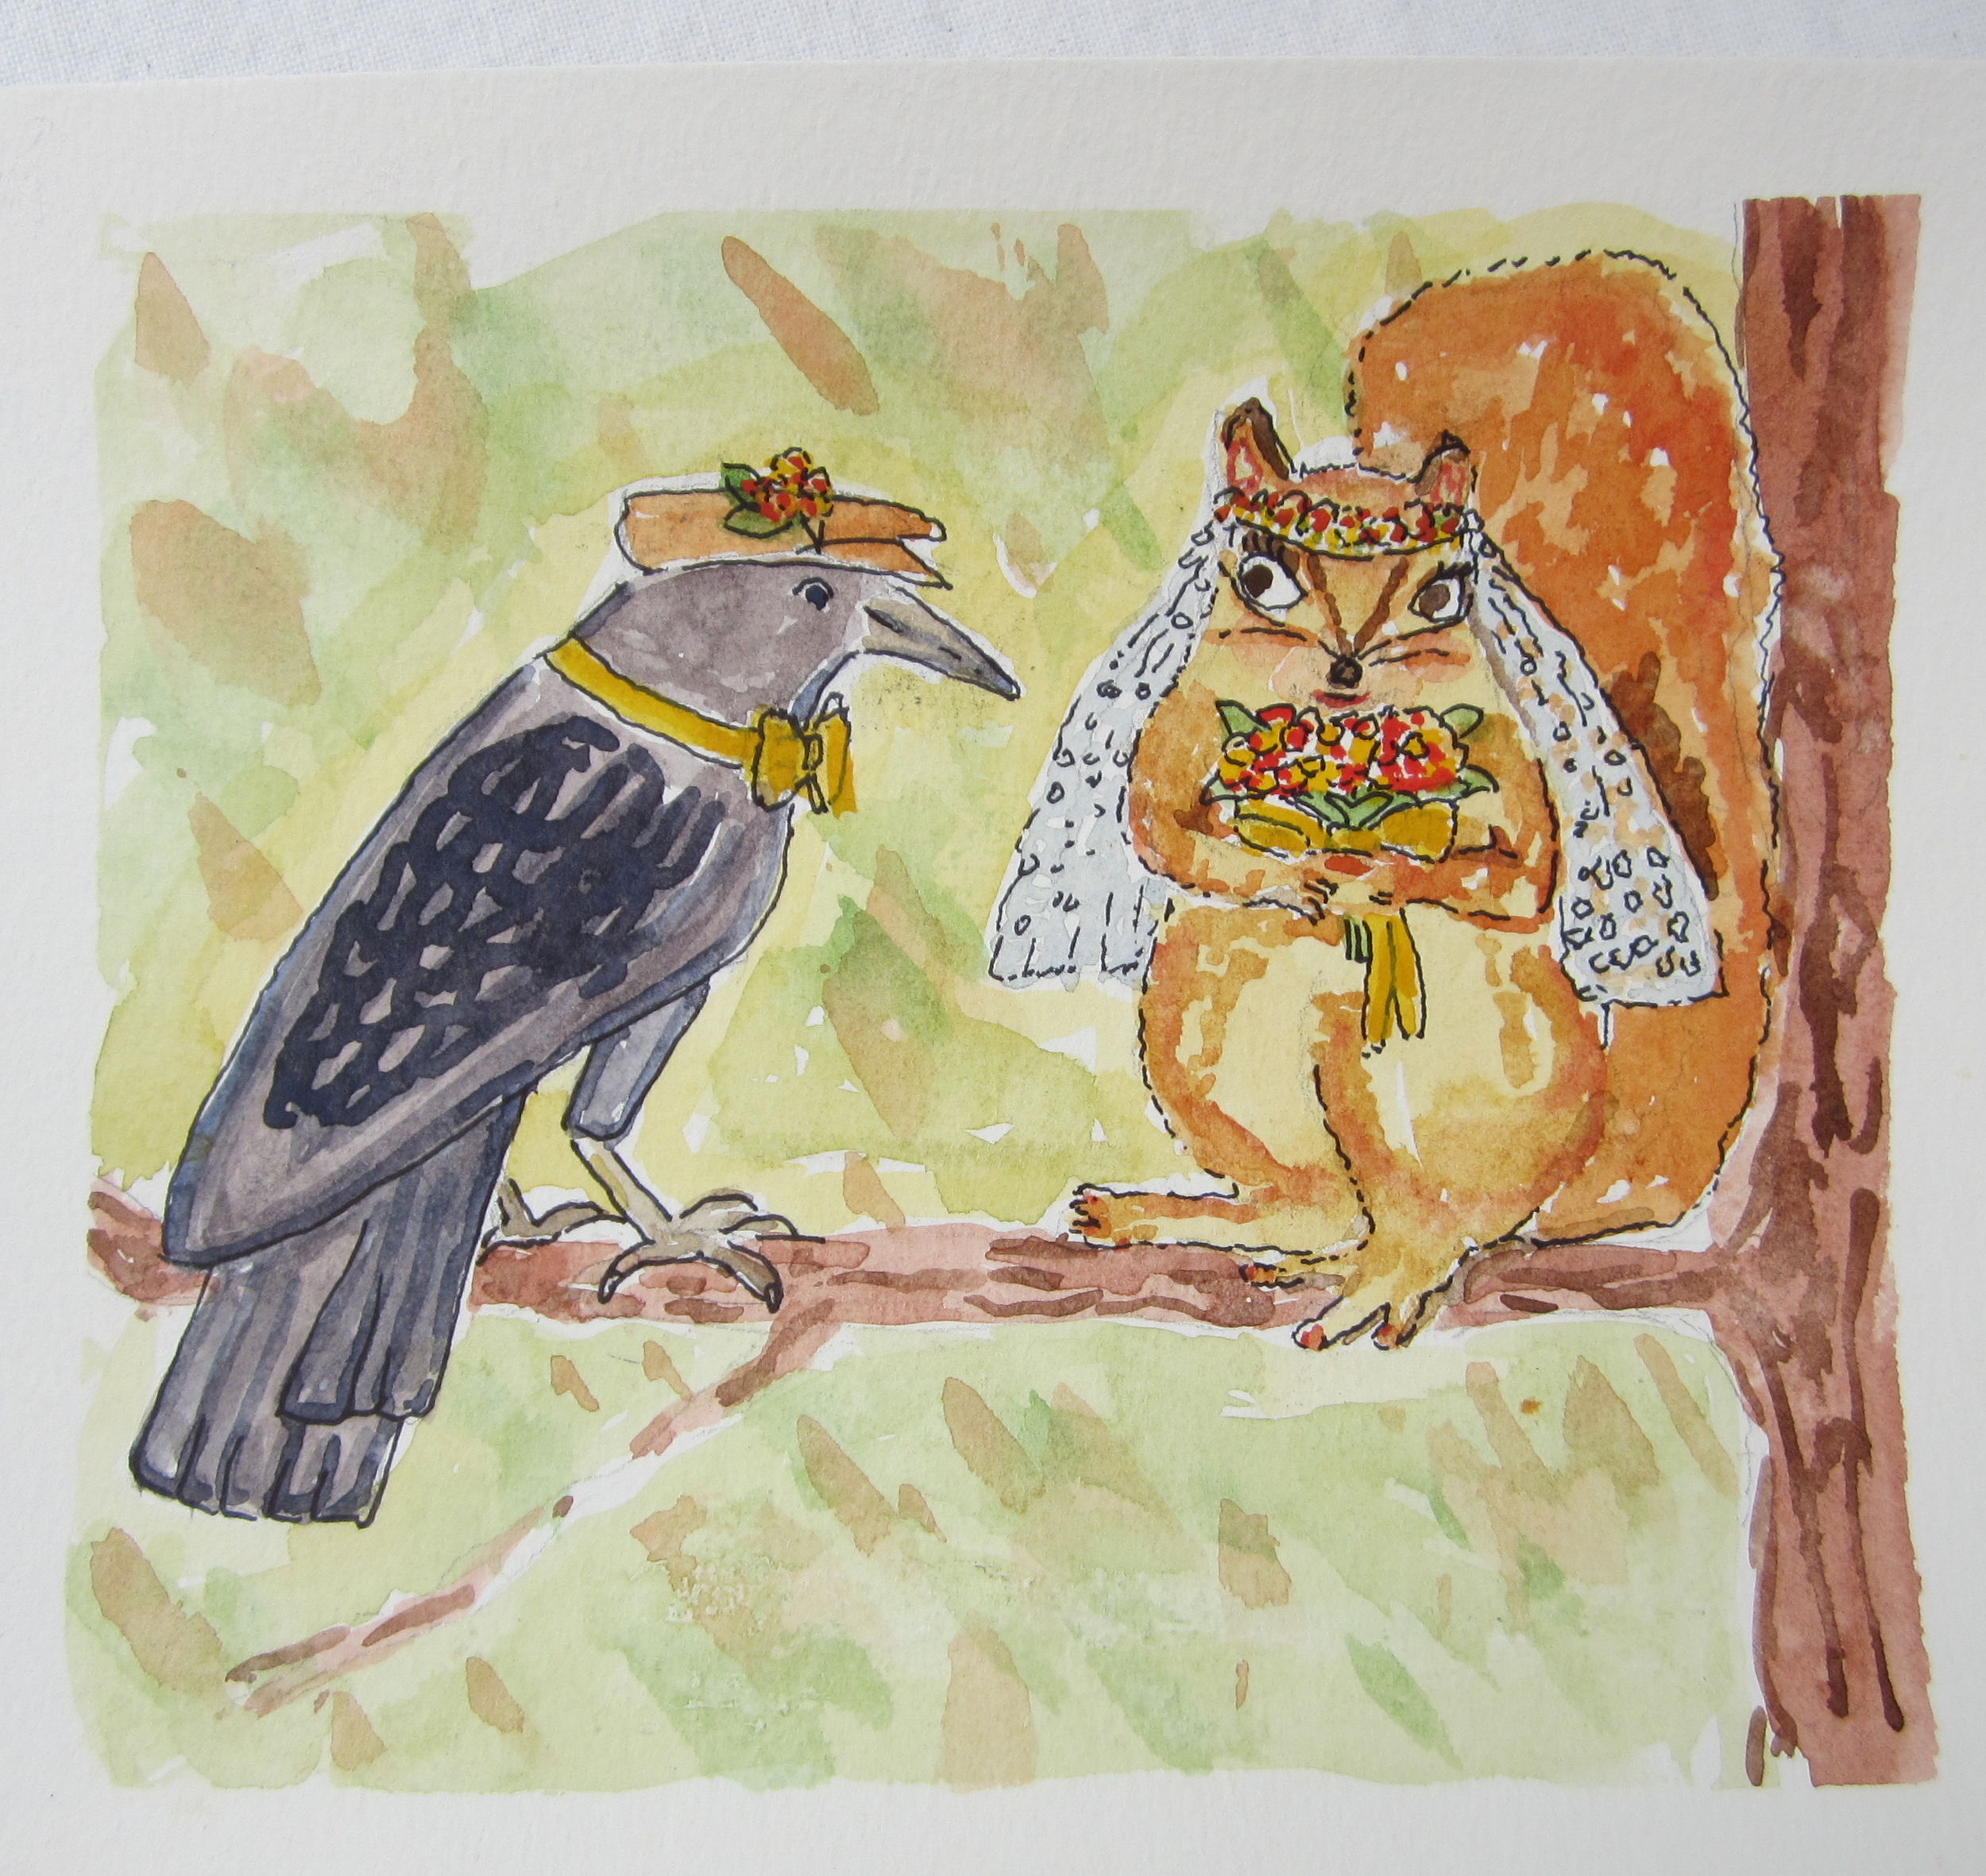 A Squirrel, A Raven, A Crisp Yellow Bow